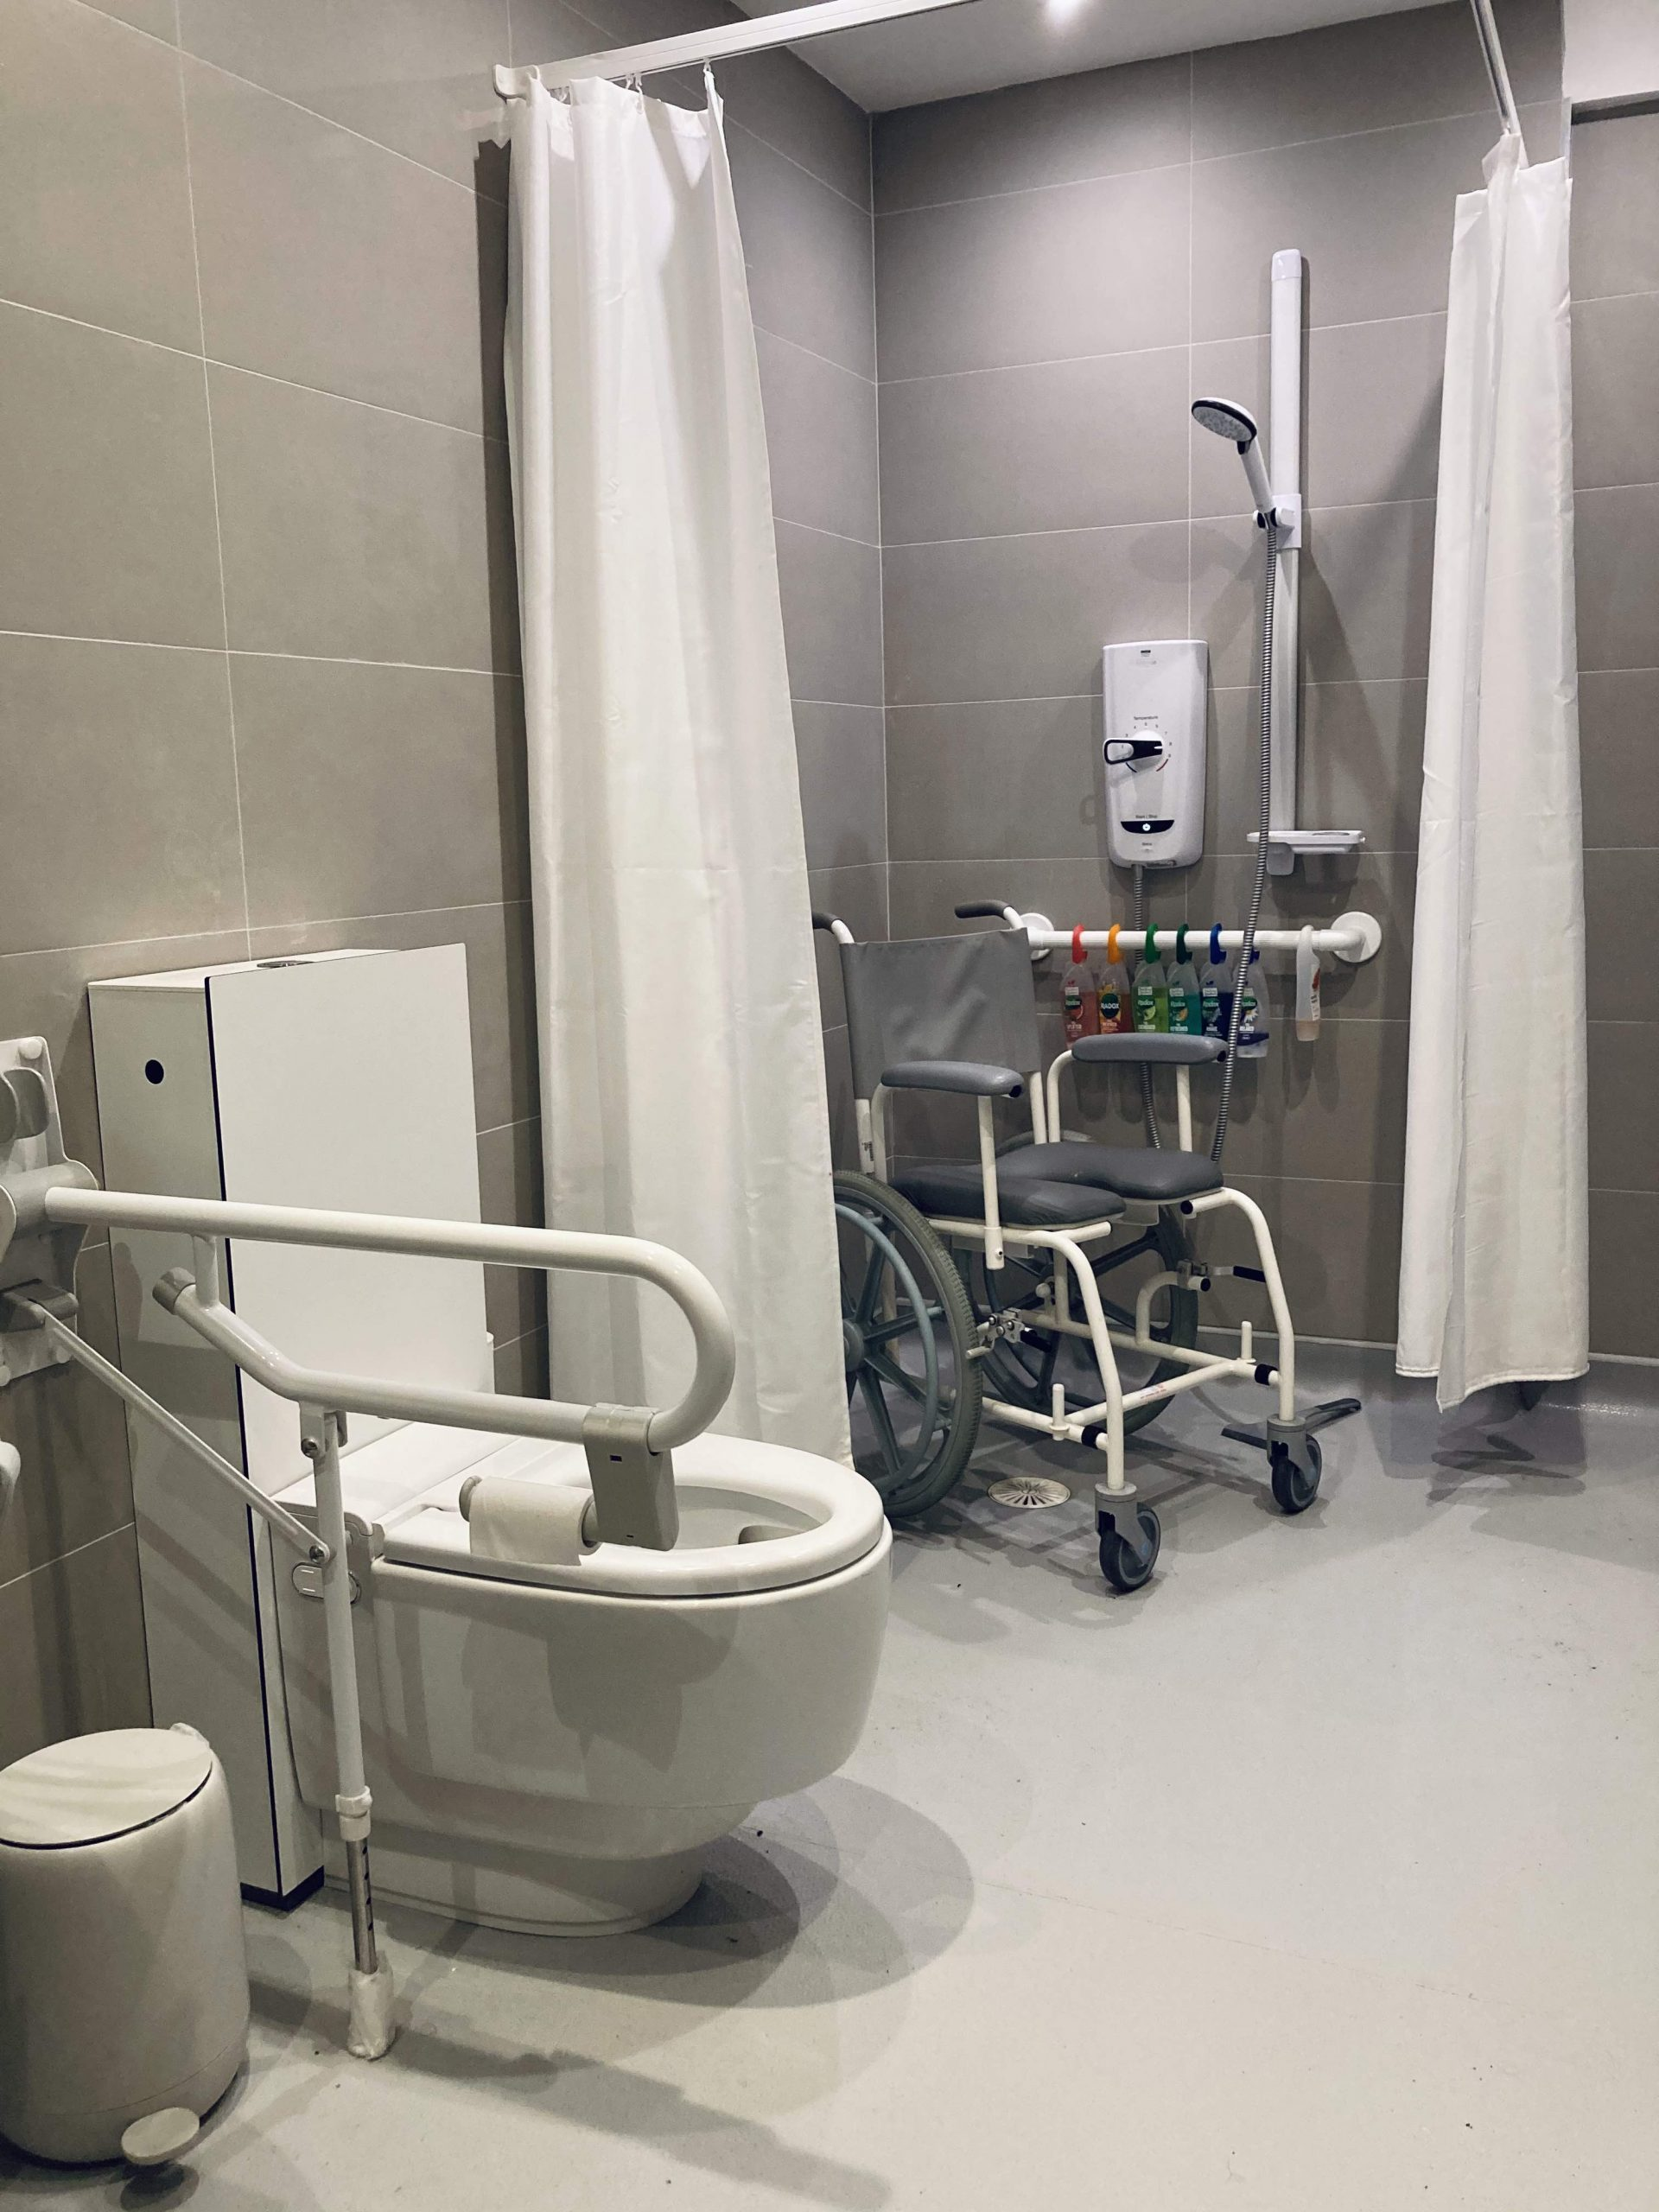 A photograph of part of Touretteshero's newly renovated accessible wet-room bathroom. The walls are tiled in large rectangular slate-grey tiles. These are laid horizontally floor to ceiling. White shower curtains are pulled open to either side of it's right angled rail. A shower chair sits in the corner sits next to the shower unit and showerhead. Below it is a grab rail with many multi coloured shower gels hanging from the rail. A sink hole can be seen beneath the shower chair whiA wash and dry geberit toilet is in the left foreground of the image with a grab rail to it's right.